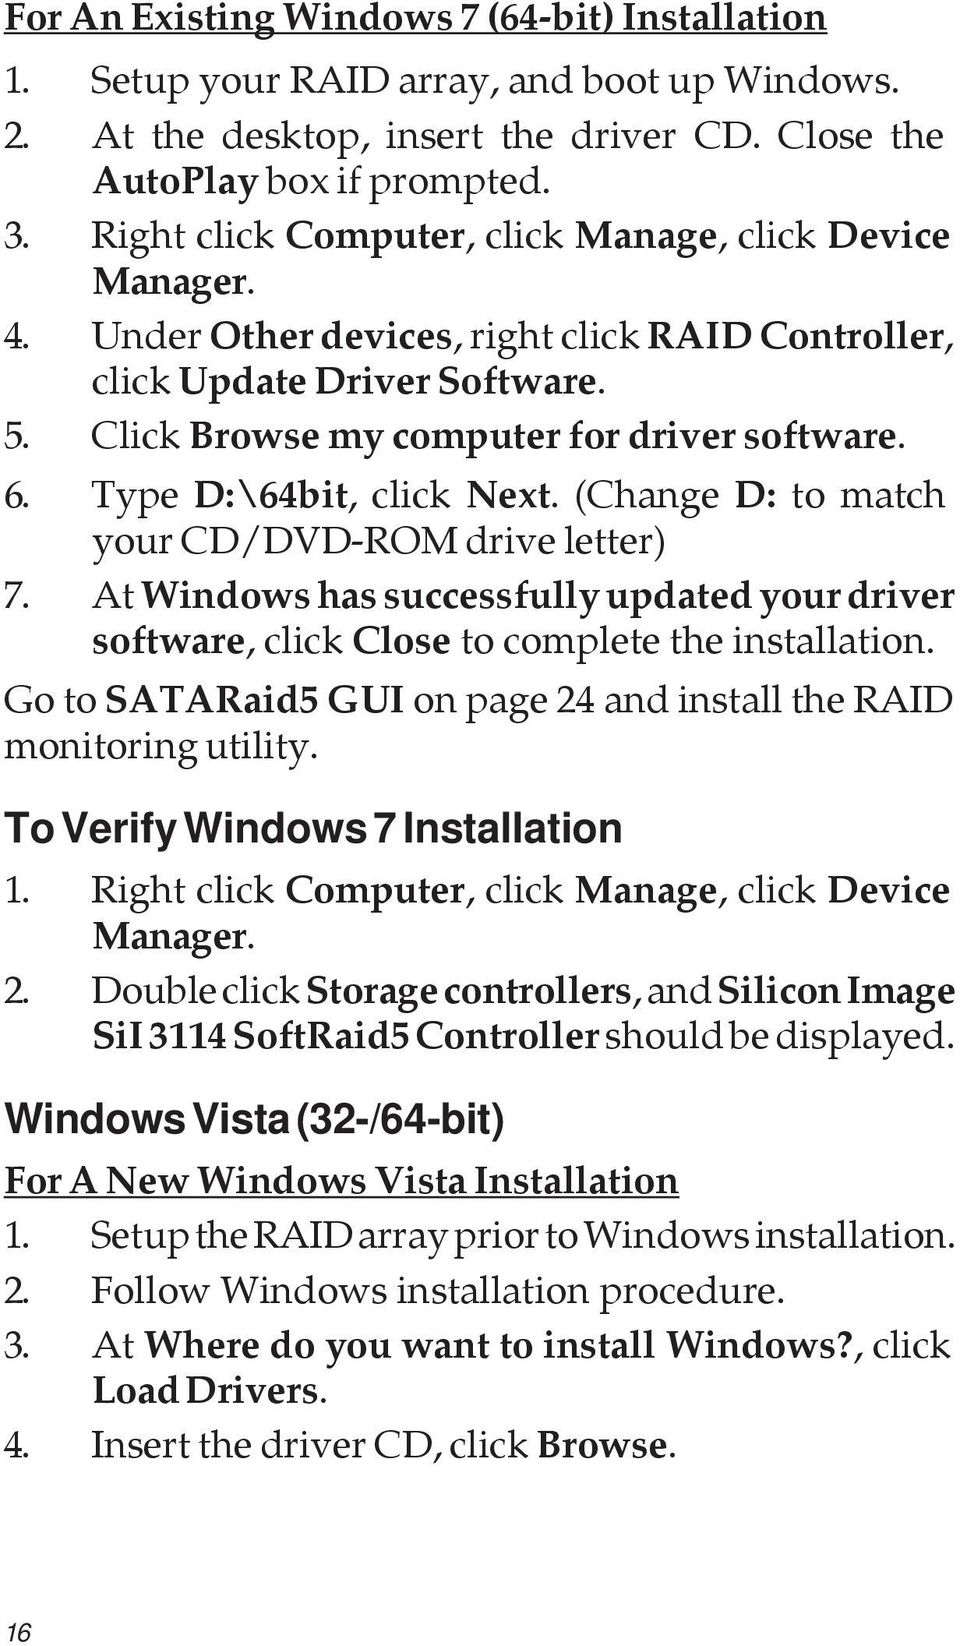 Type D:\64bit, click Next. (Change D: to match your CD/DVD-ROM drive letter) 7. At Windows has successfully updated your driver software, click Close to complete the installation.